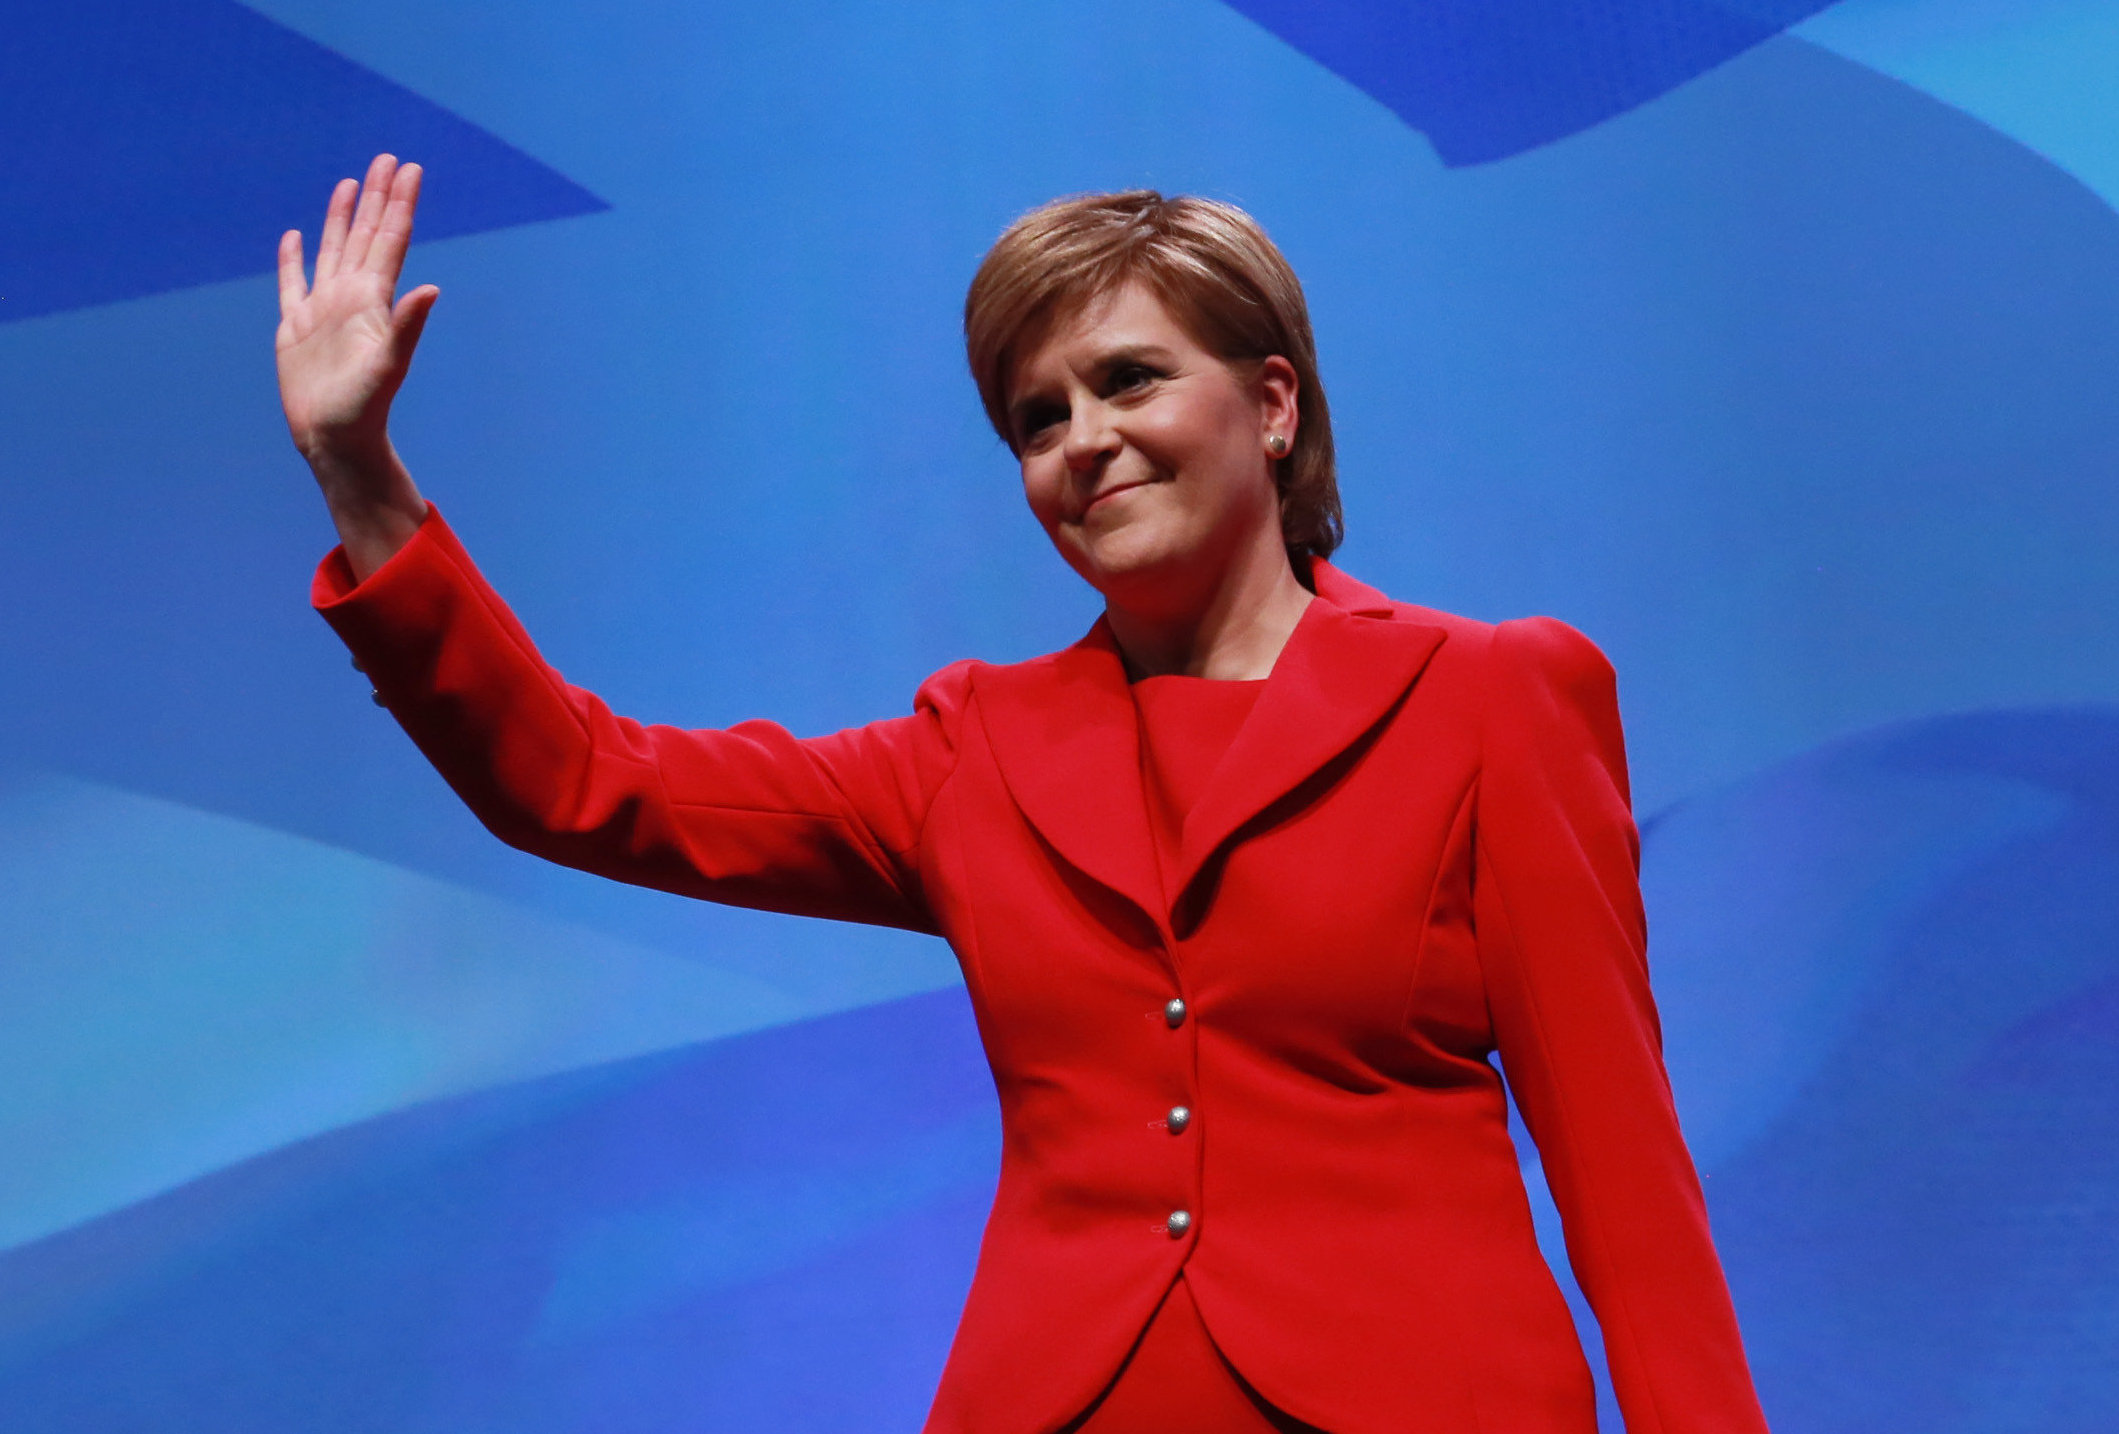 With Nicola Sturgeon side-step discussions about EU membership and currency options for an independent Scotland at her party's upcoming conference?